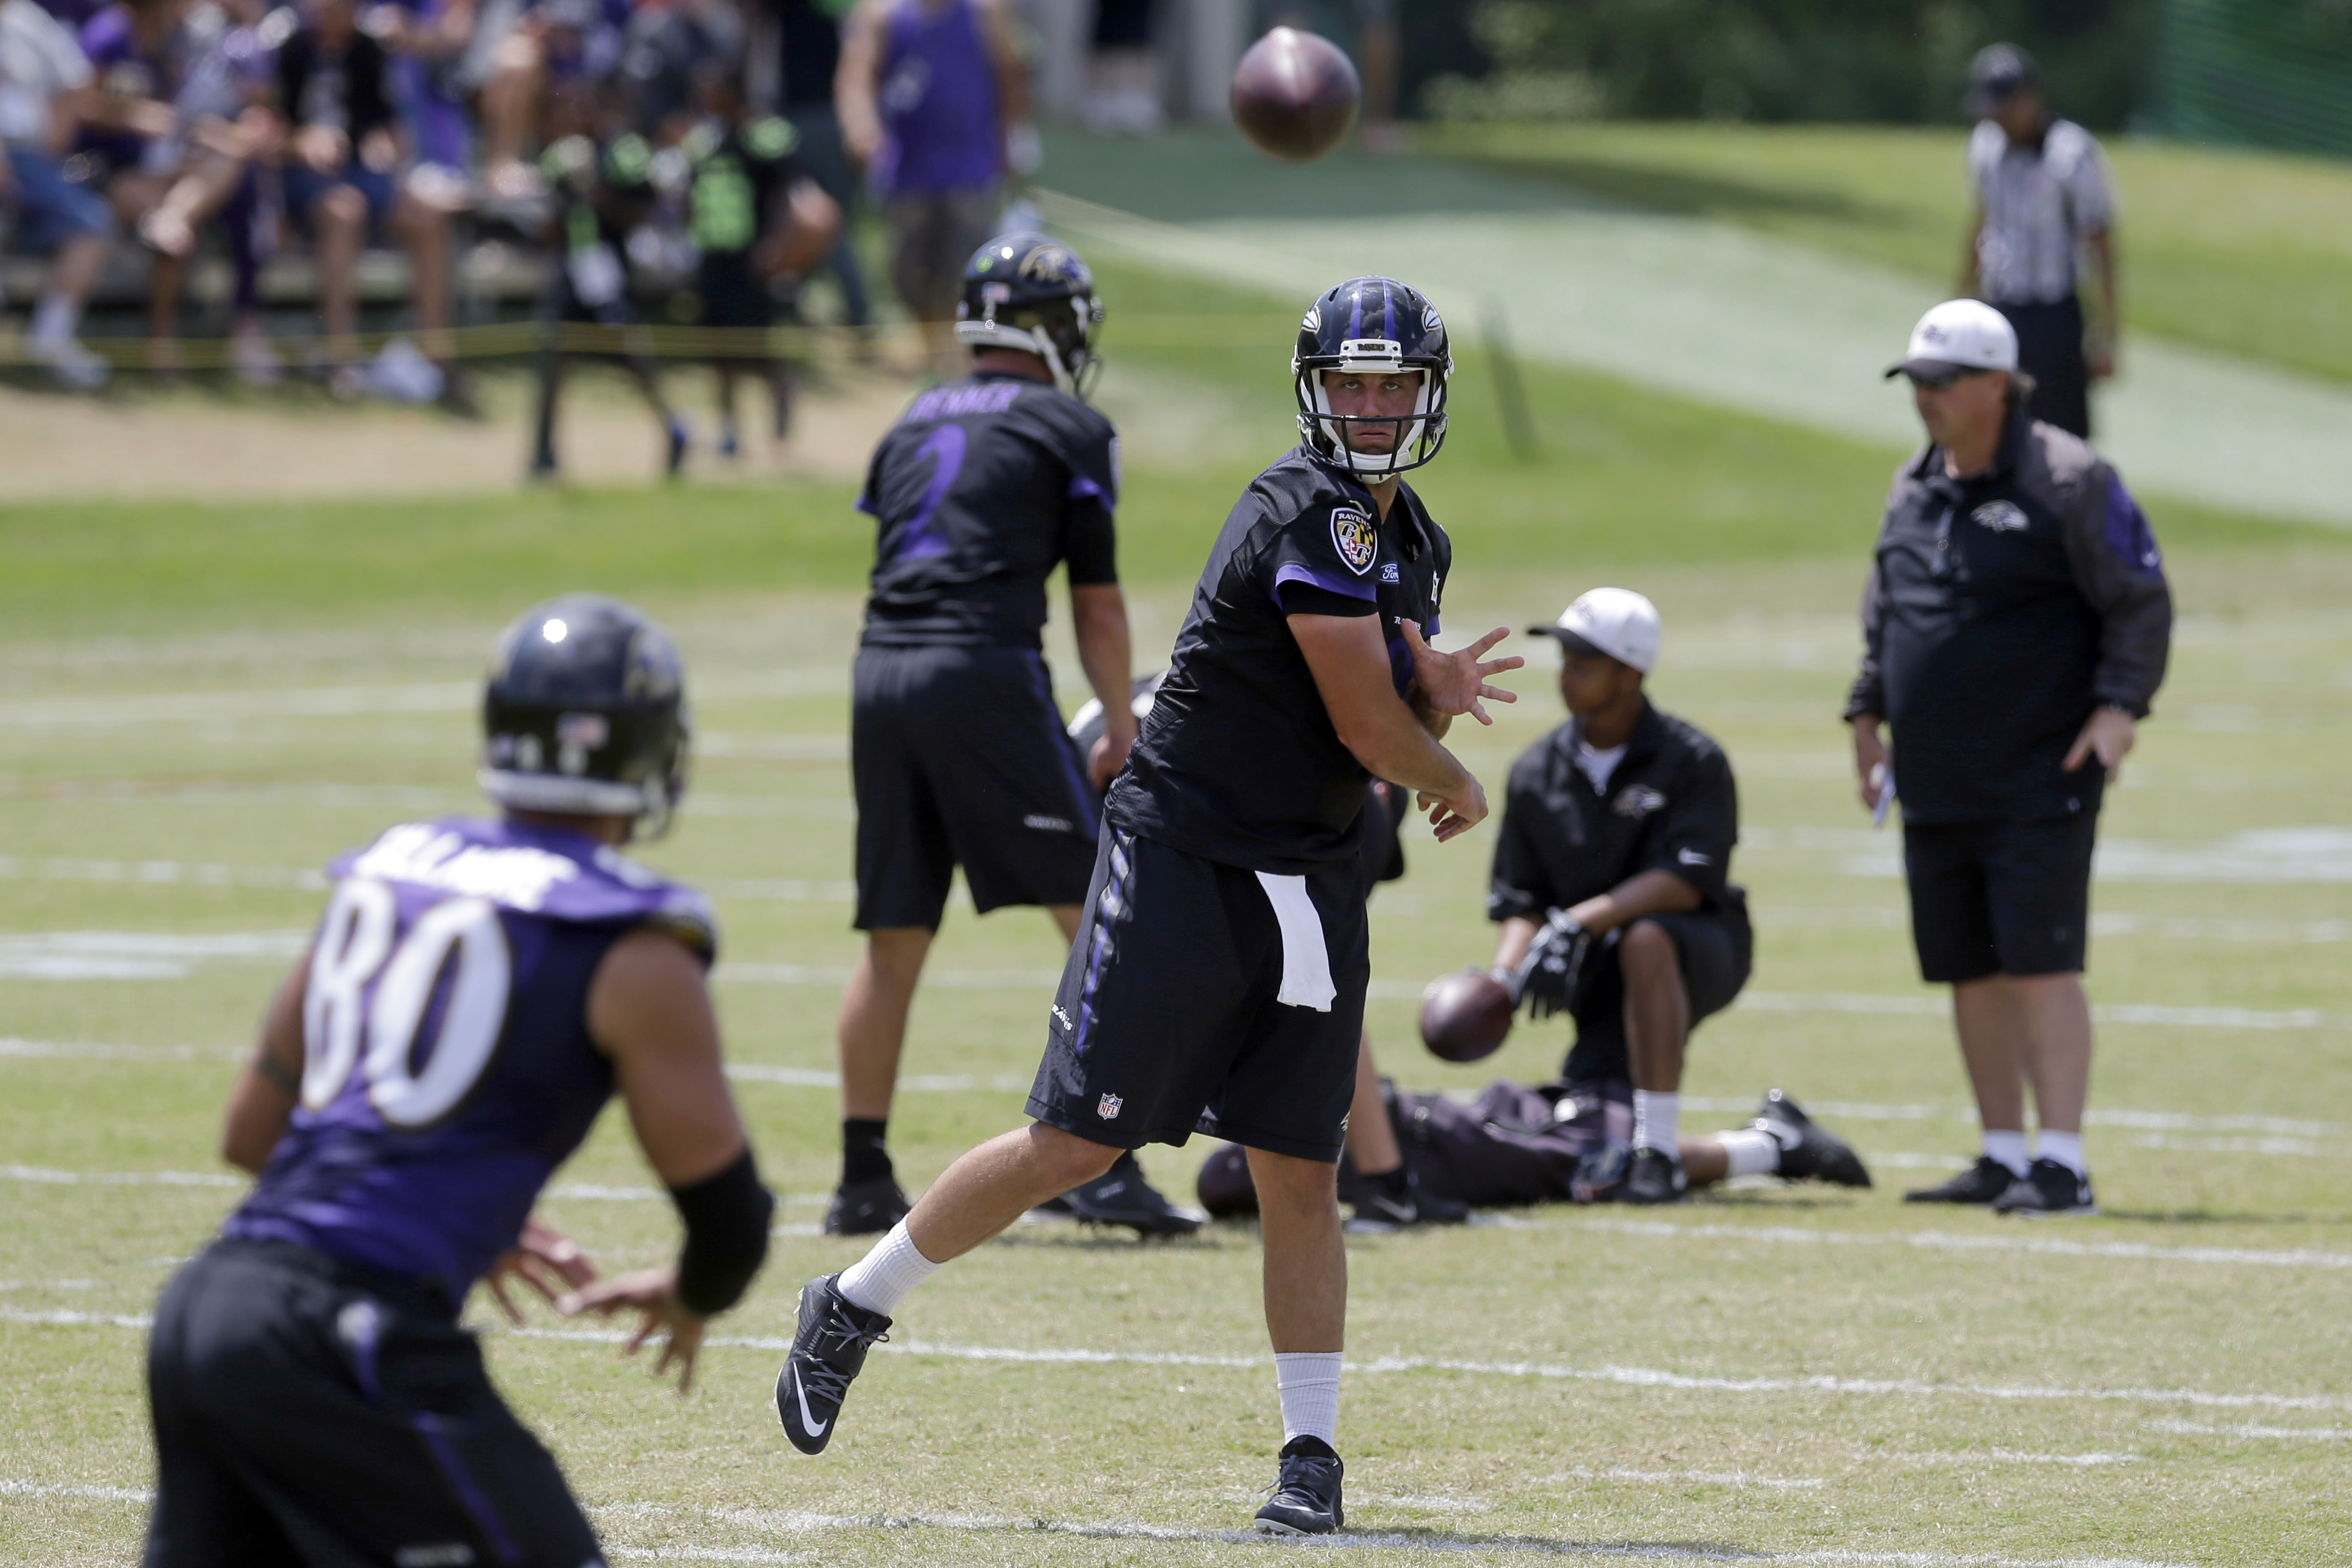 Baltimore Ravens quarterback Matt Schaub, center, throws a pass to tight end Crockett Gillmore (80) during NFL football training camp, Tuesday, Aug. 11, 2015, in Owings Mills, Md. (AP Photo/Patrick Semansky)